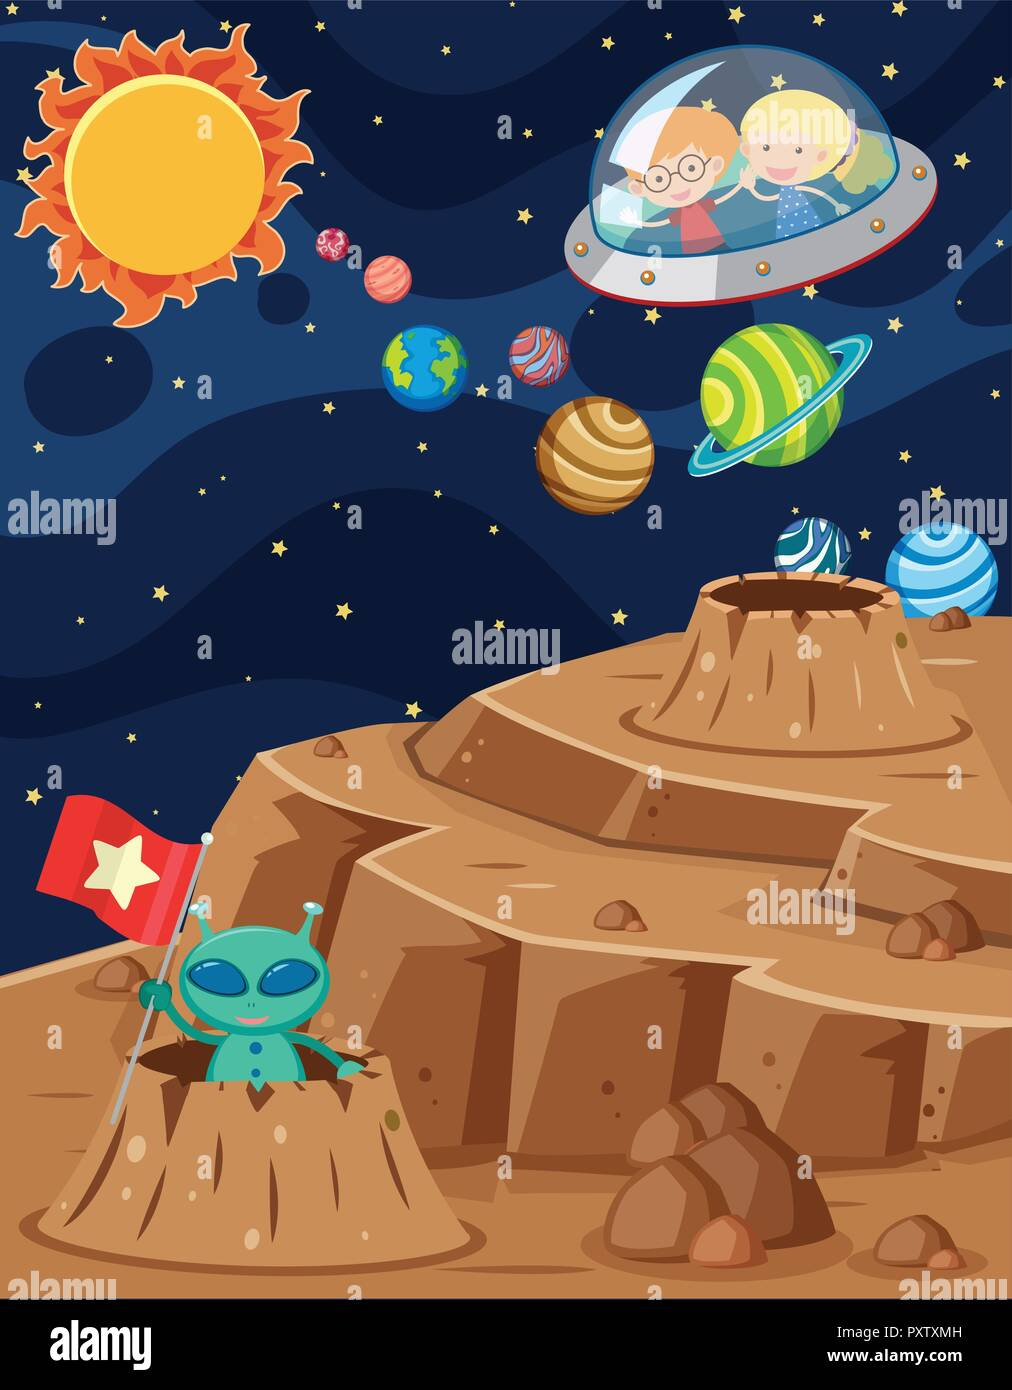 Space Scene With Kids Riding In Spaceship Illustration